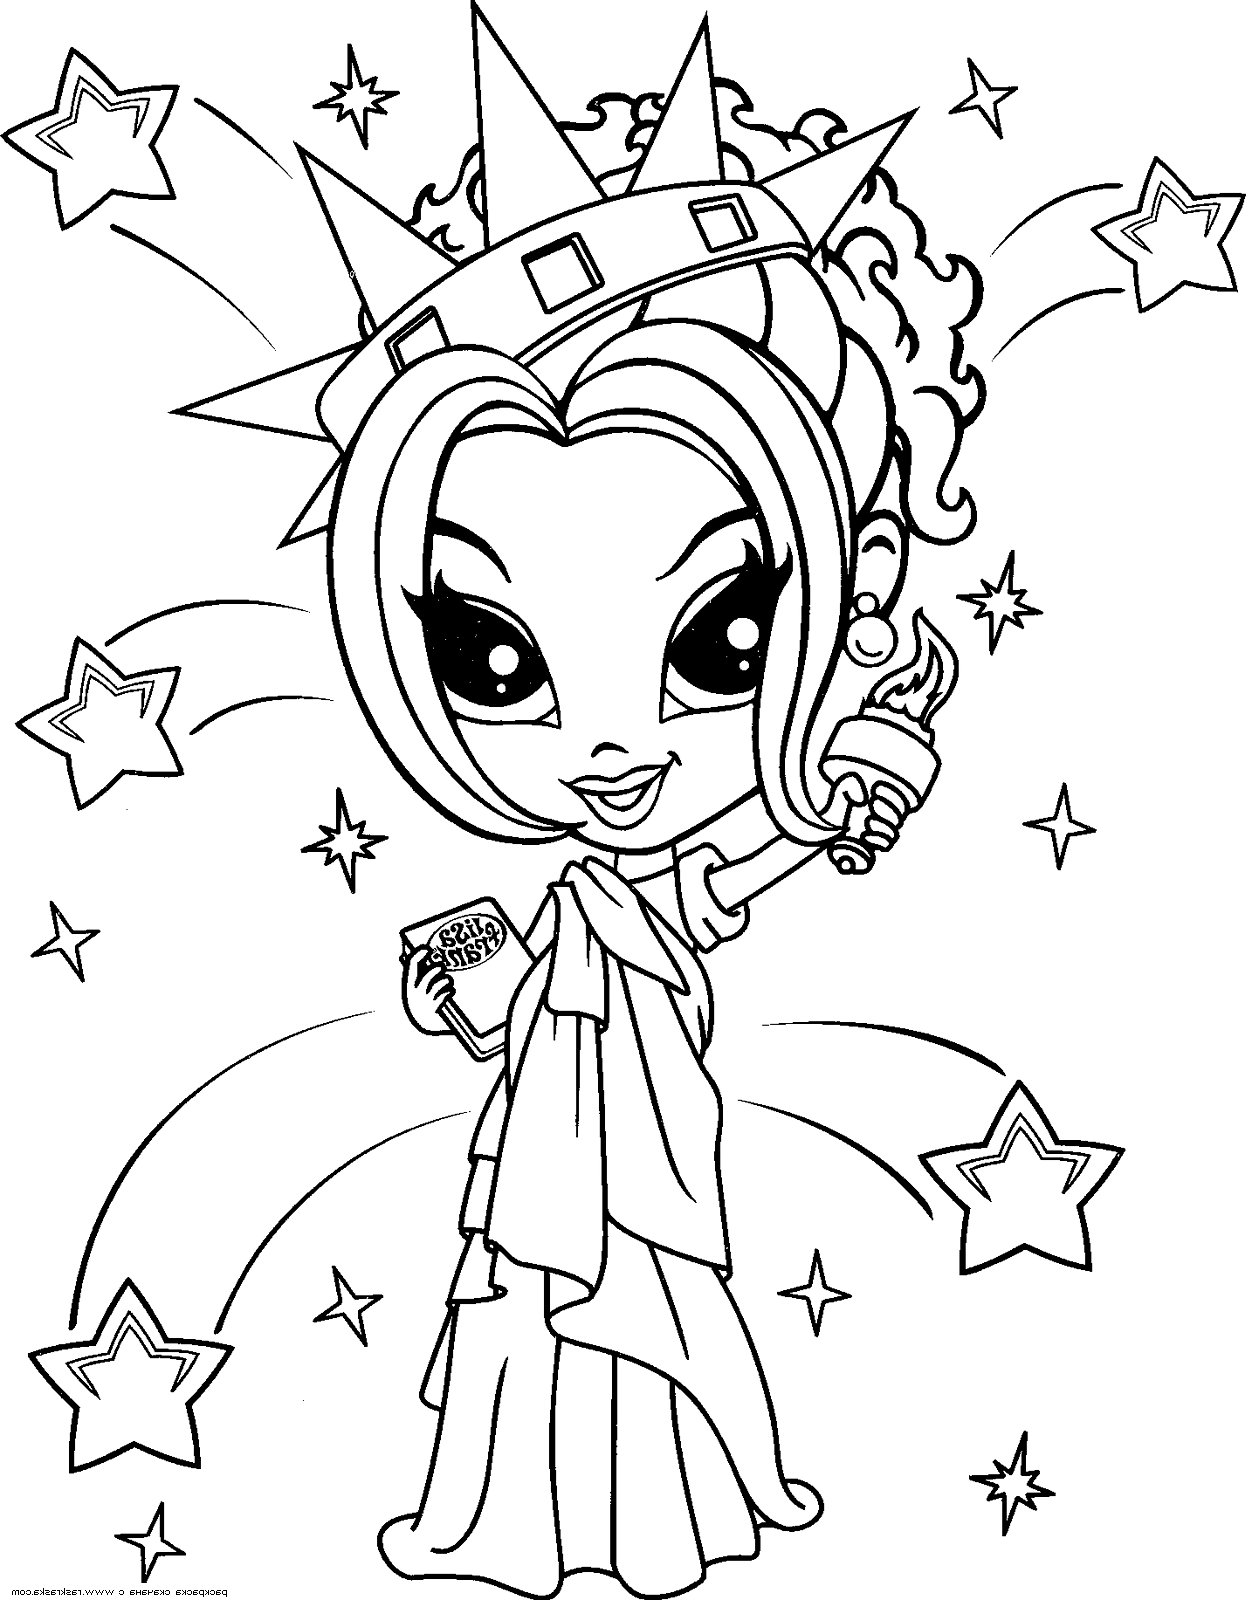 Free Lisa Frank Coloring Pages Coloring Home Free Frank Coloring Pages